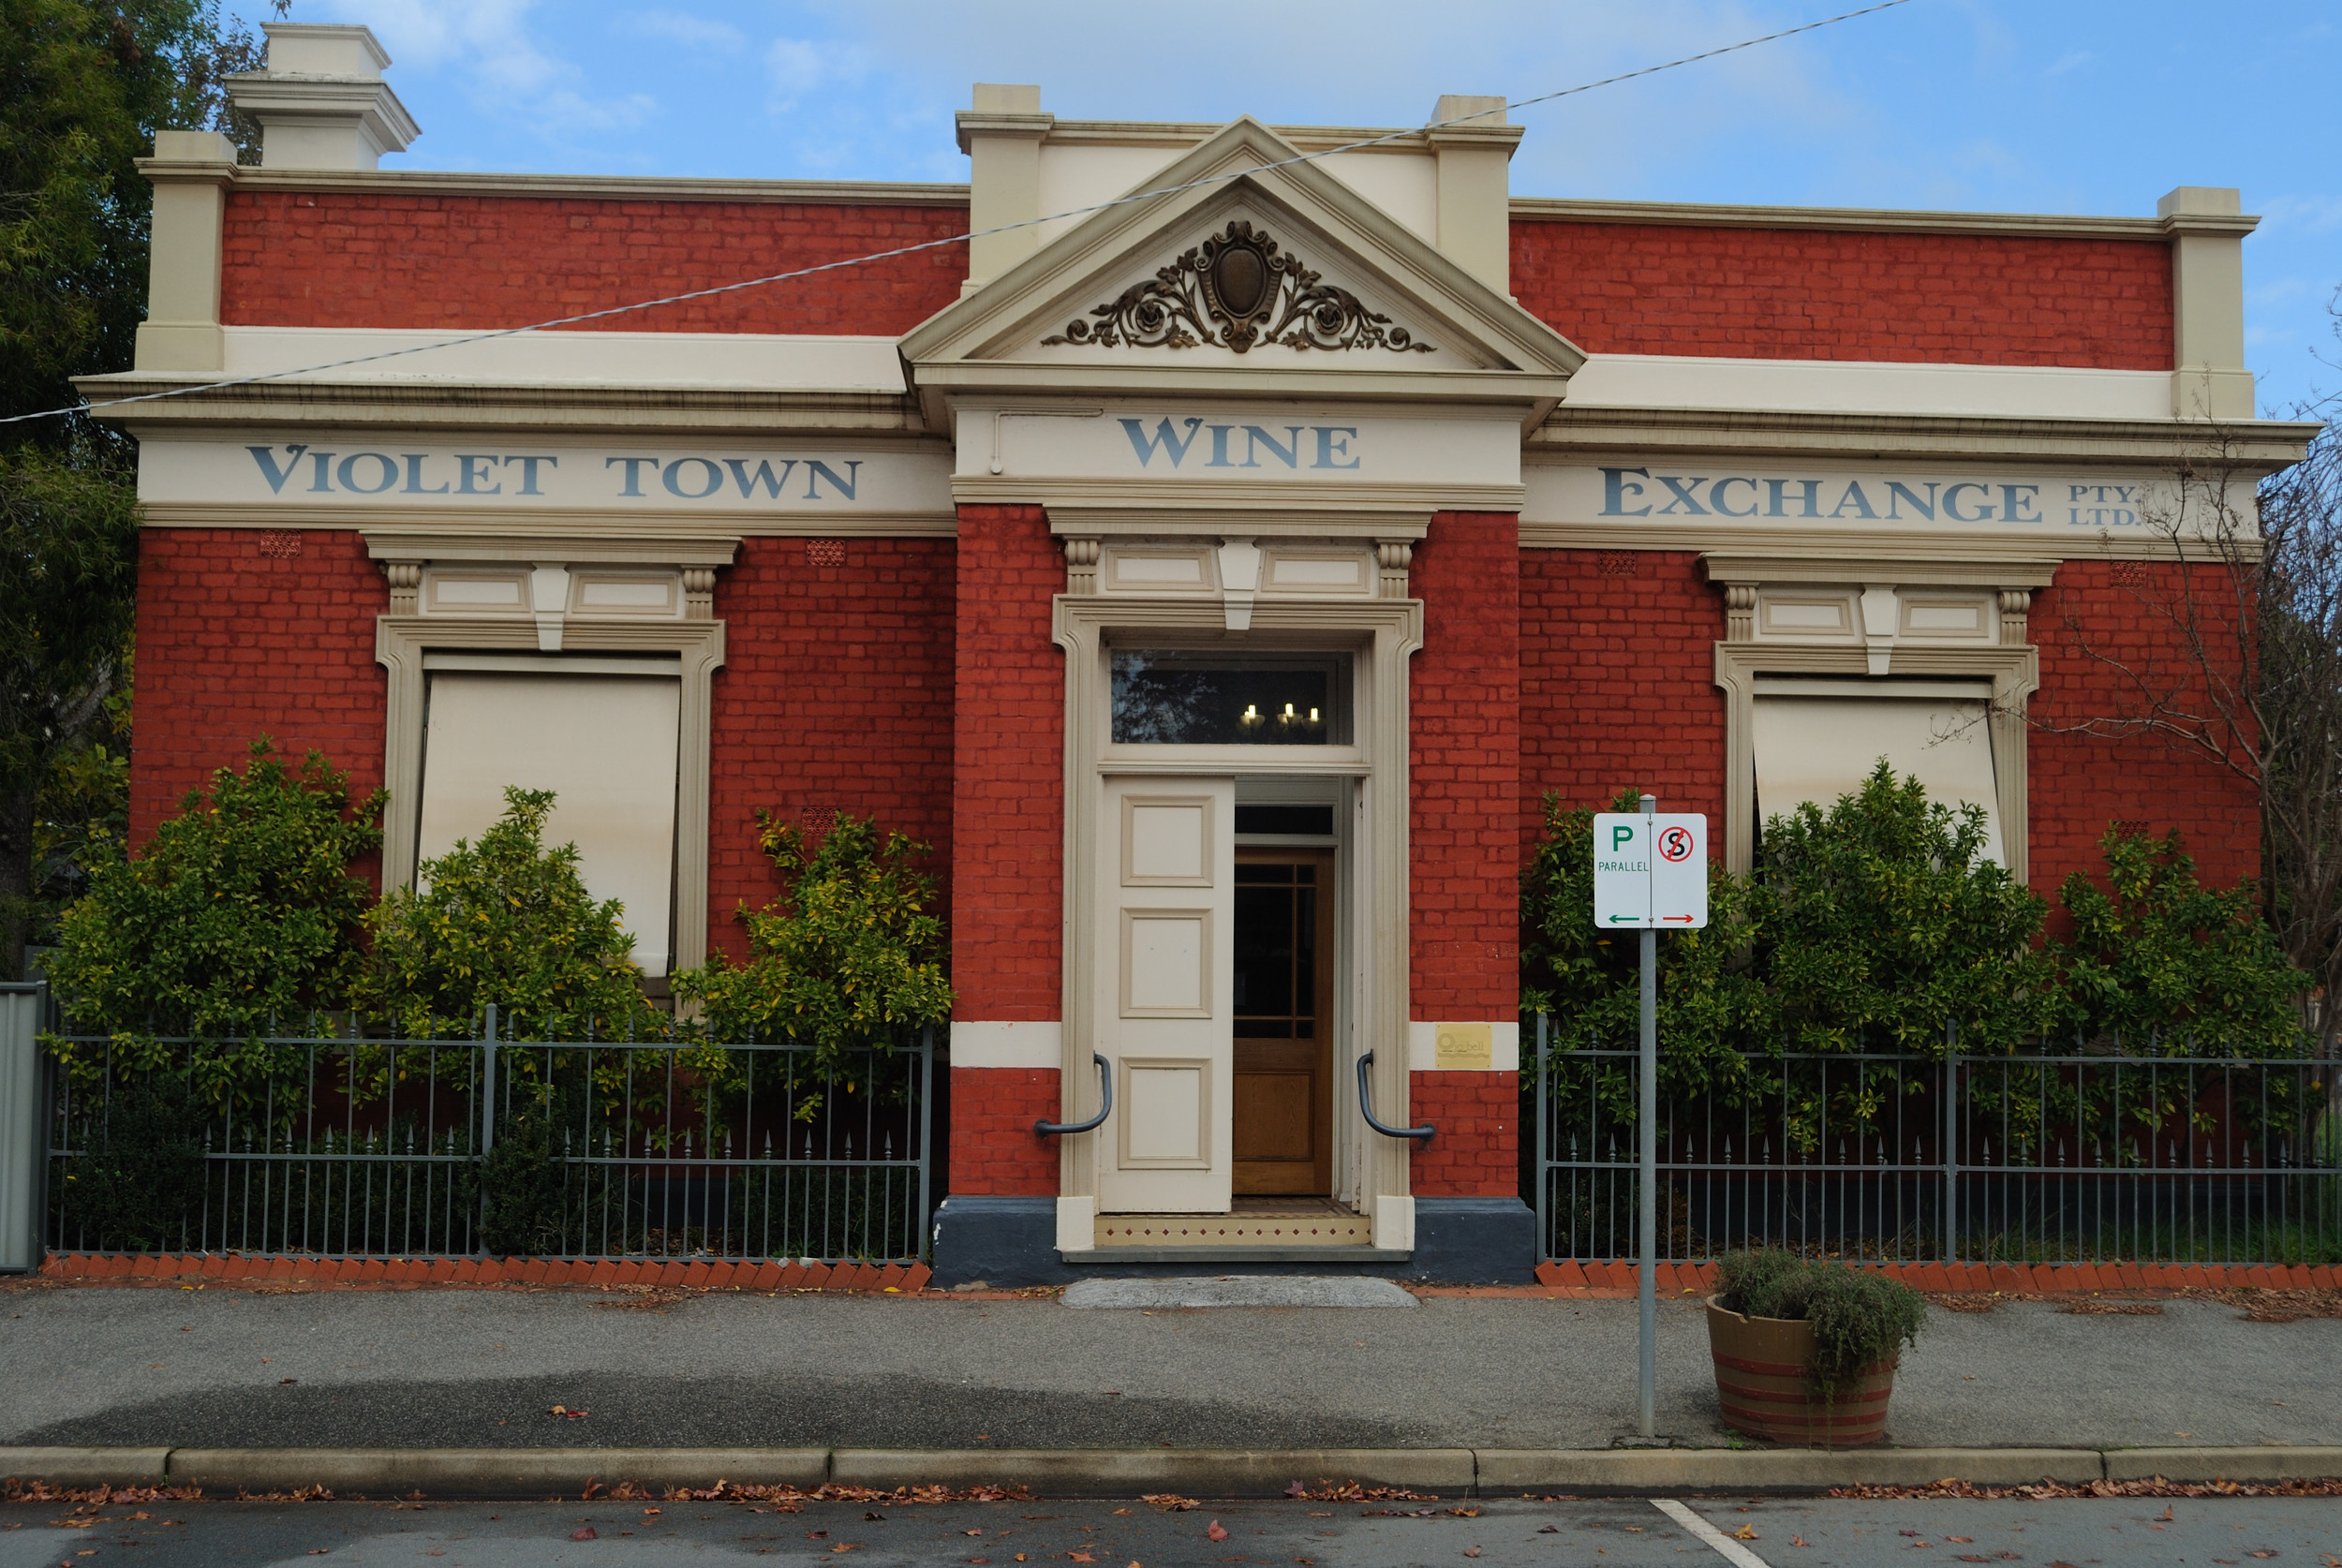 Head Office in Violet Town, Victoria